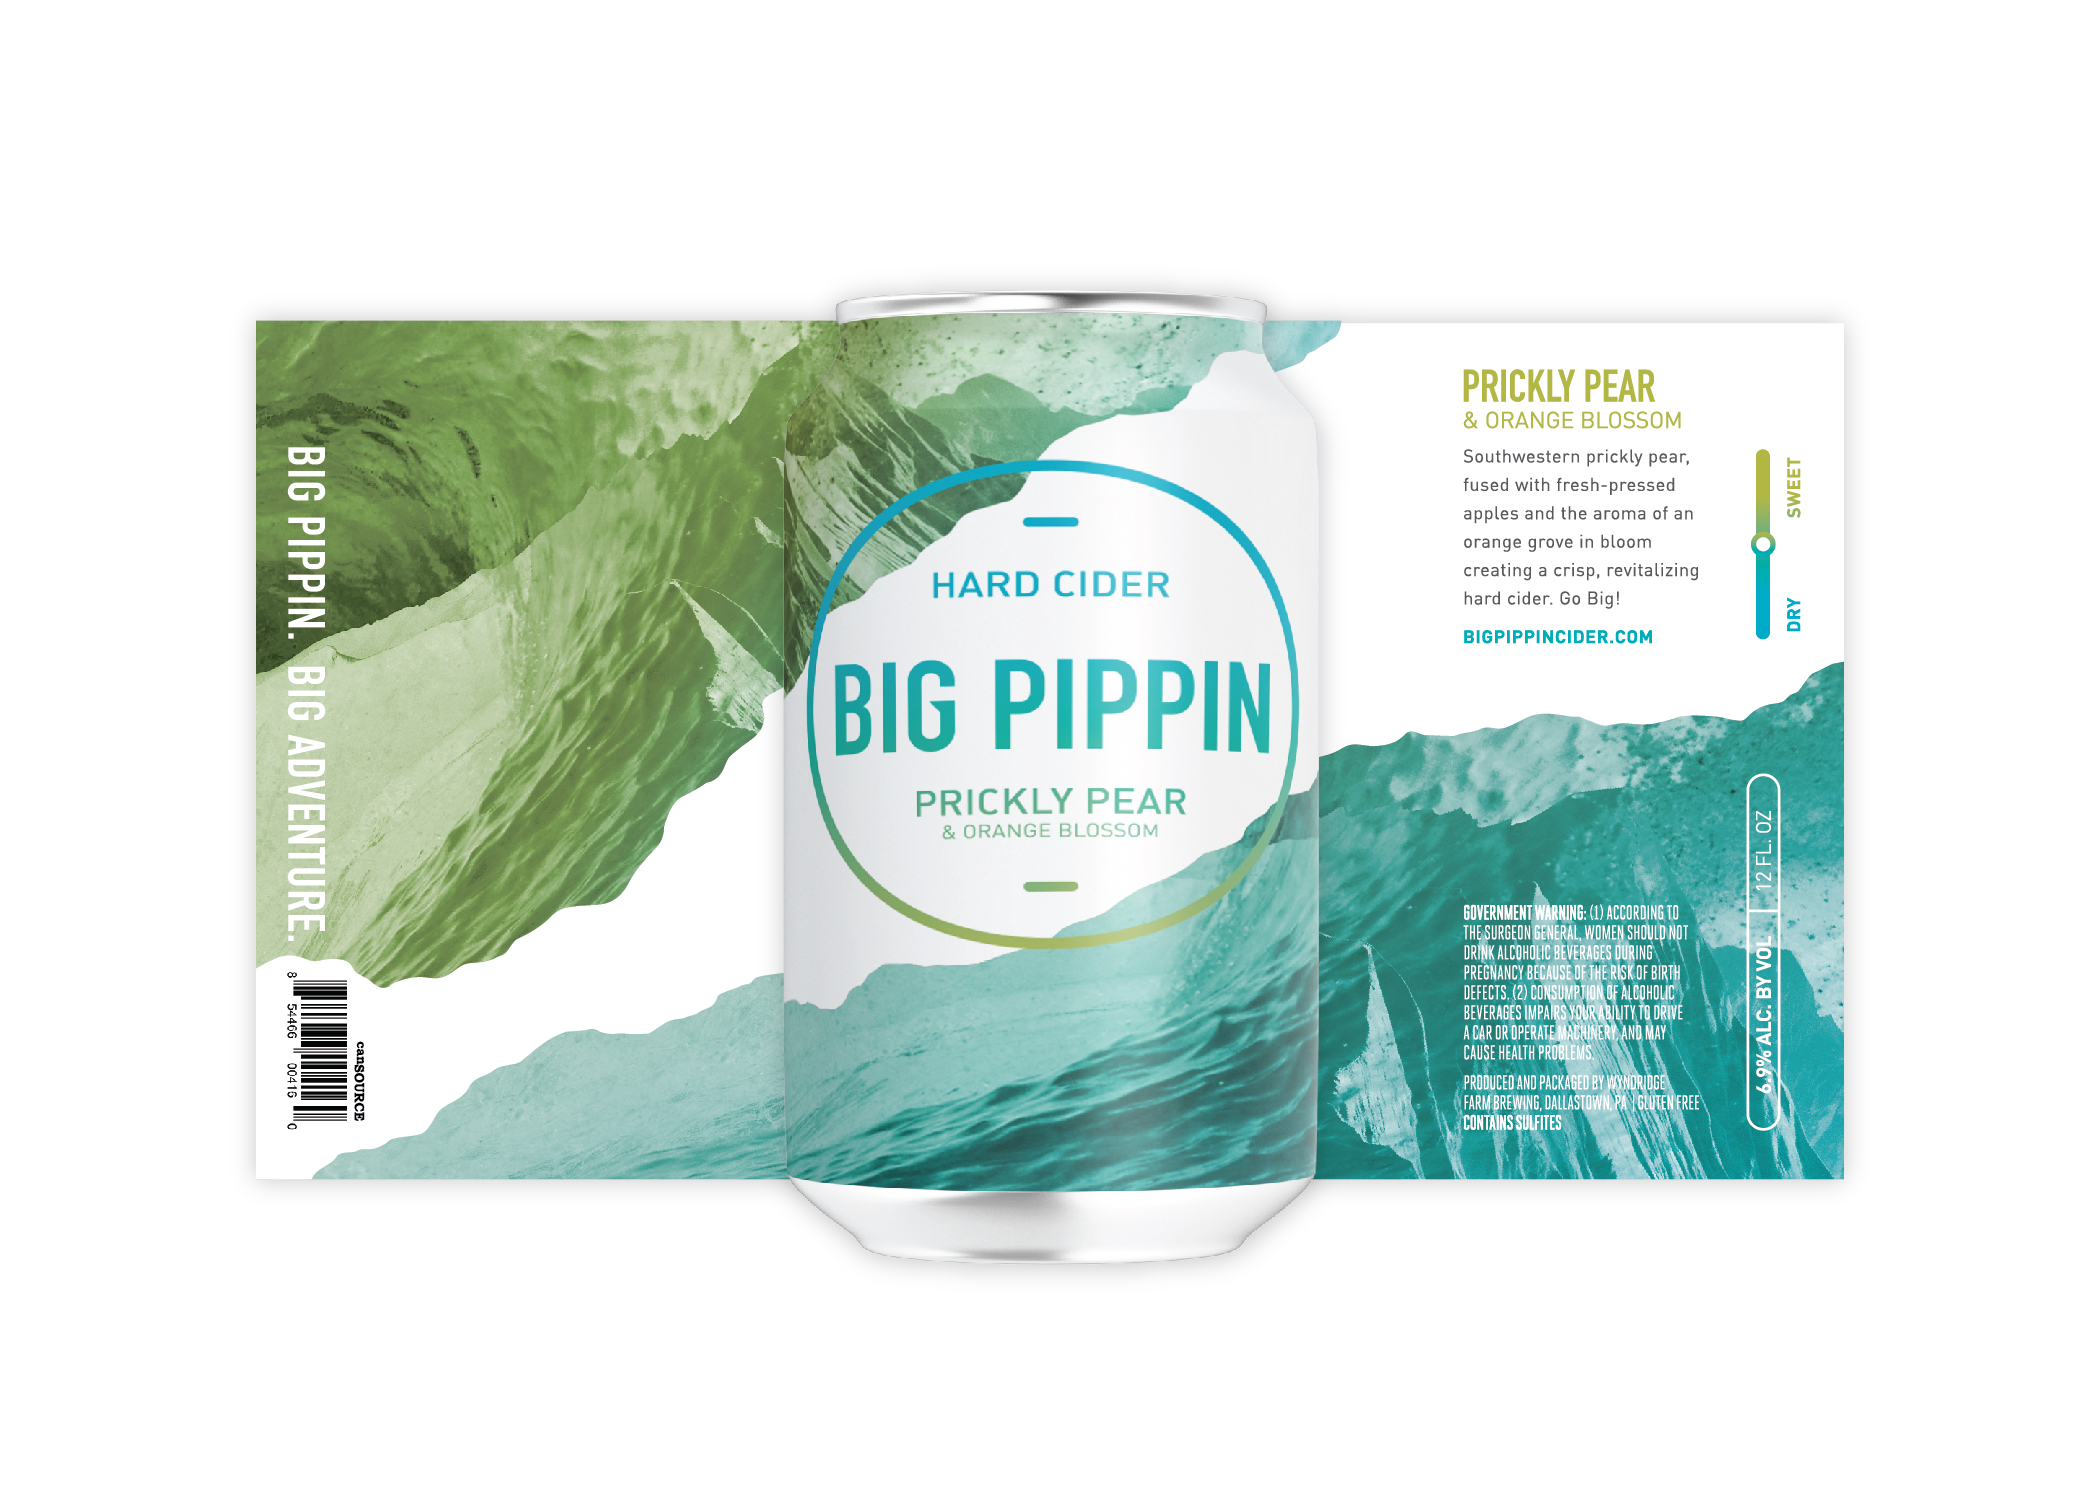 Big Pippin Hard Cider Branding and Package Design / World Brand Design Society